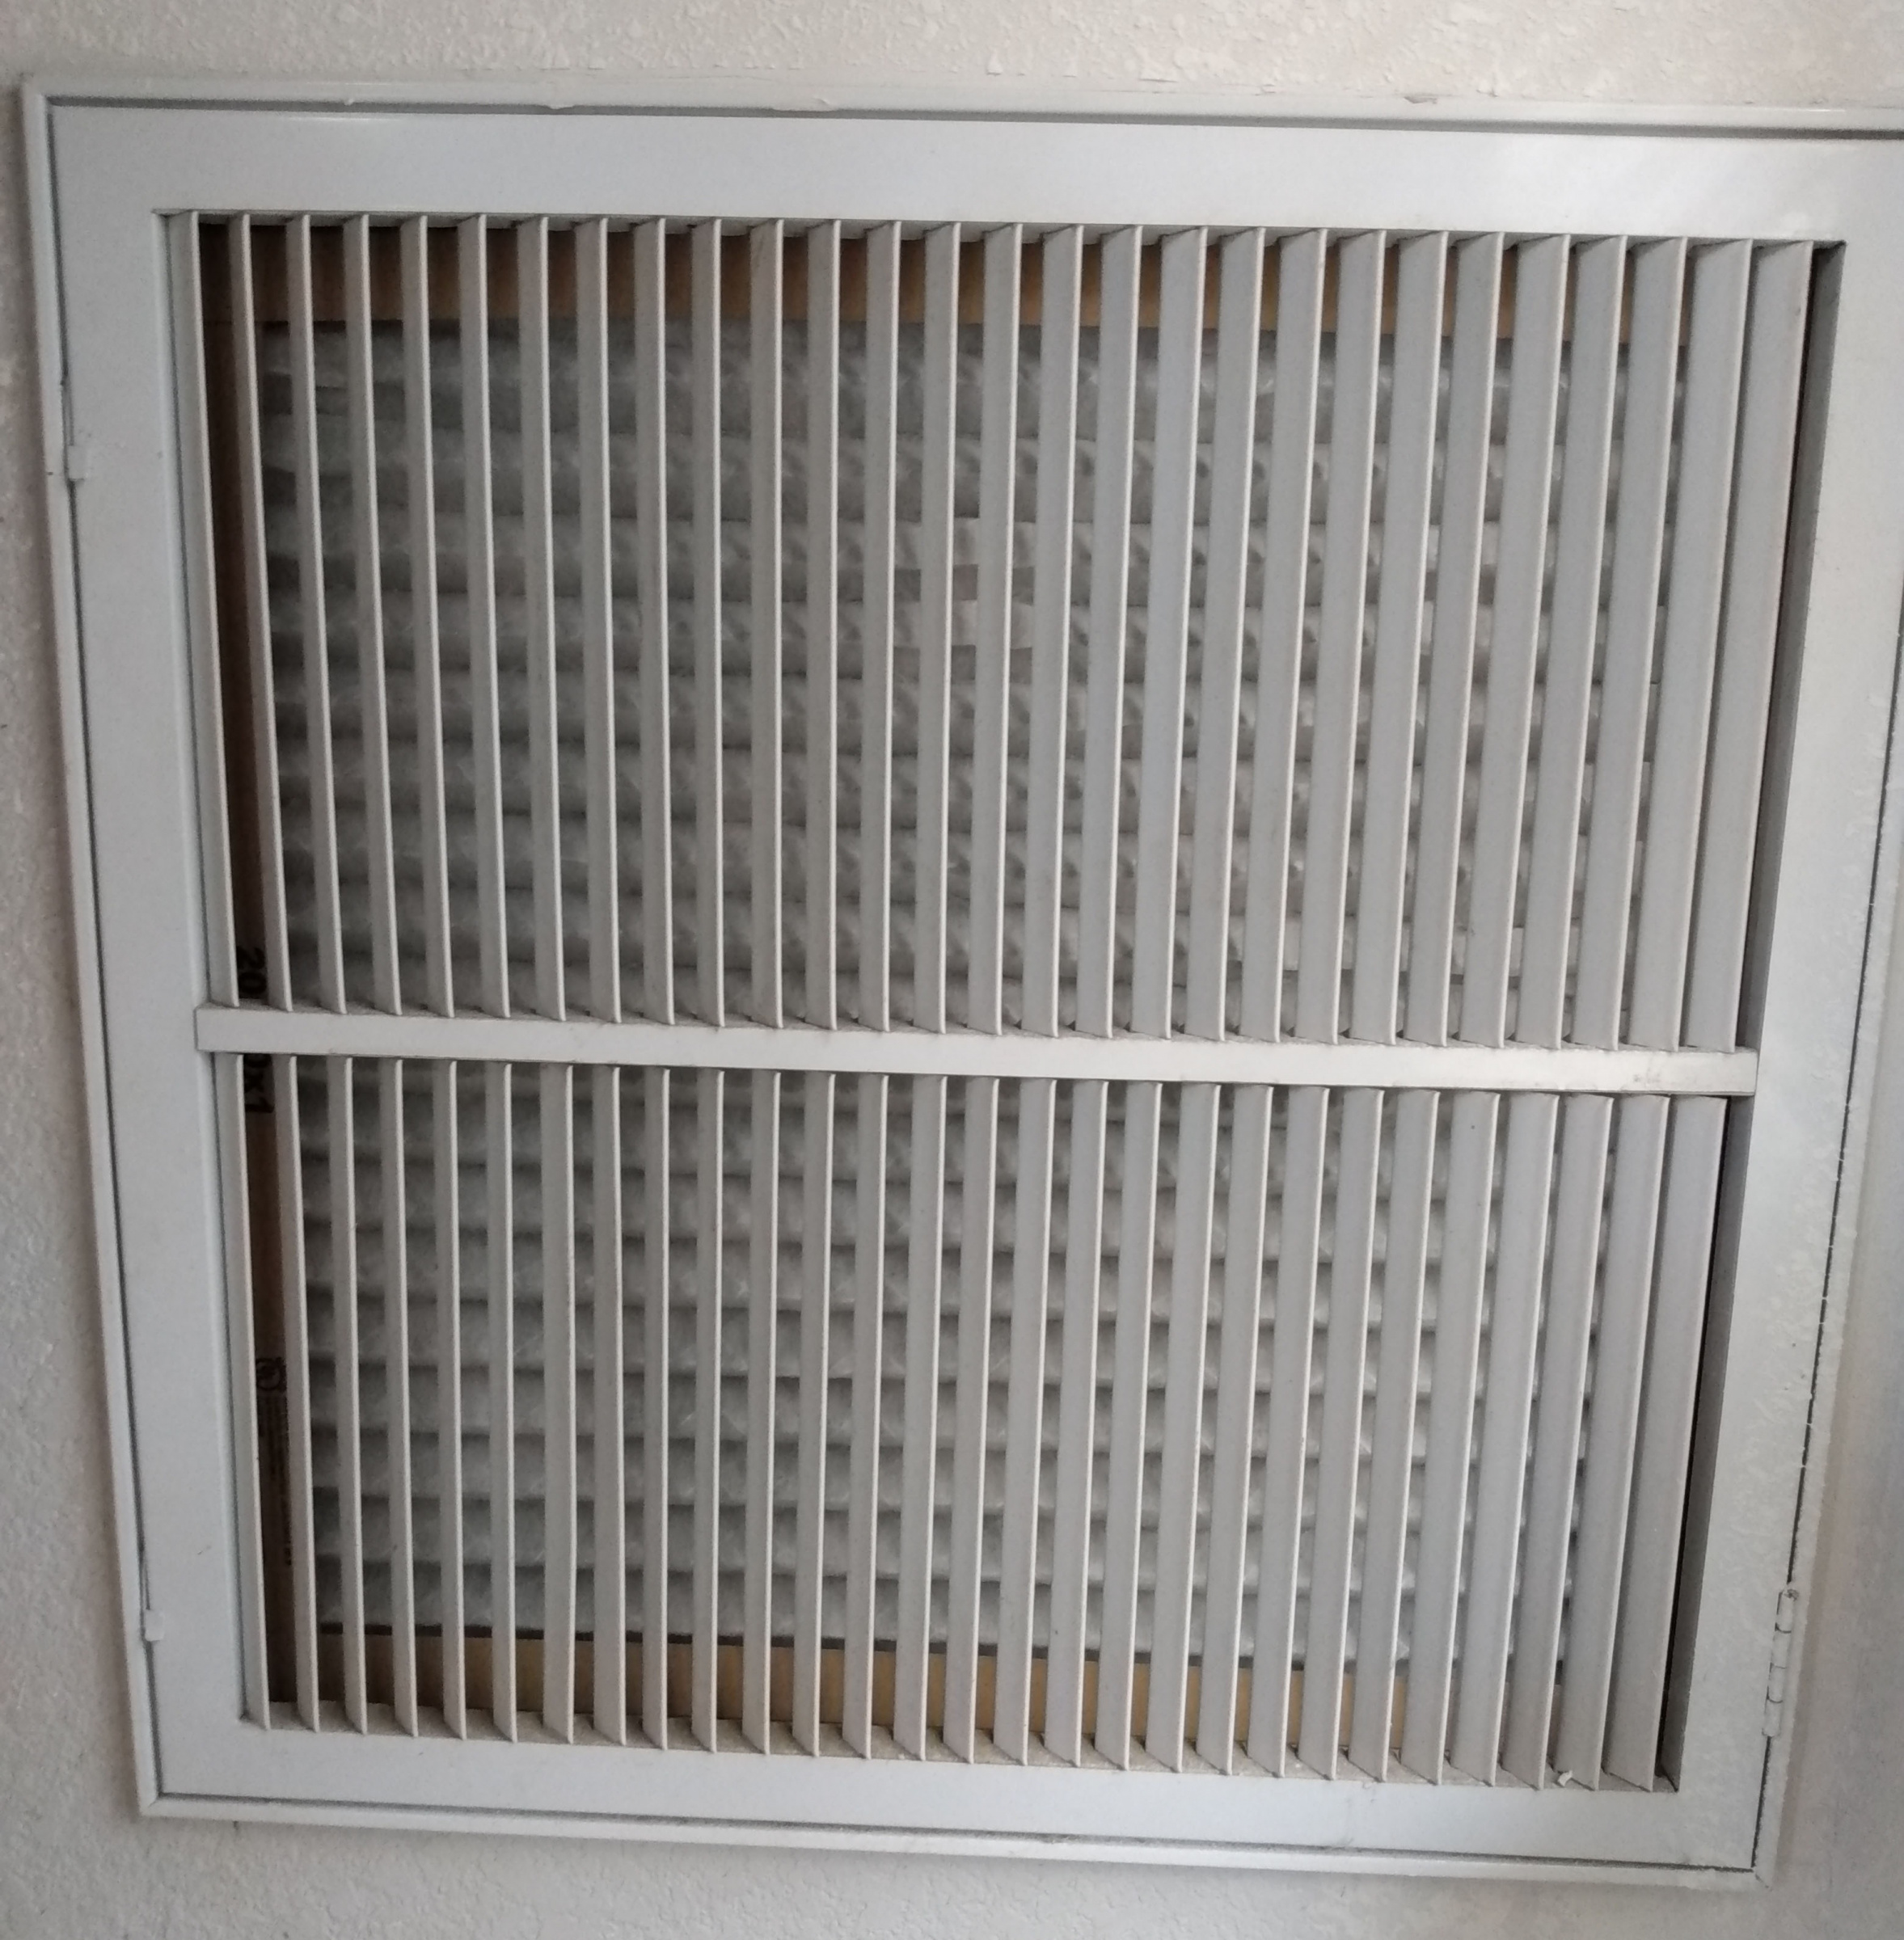 Silly air filter question-af1.jpg